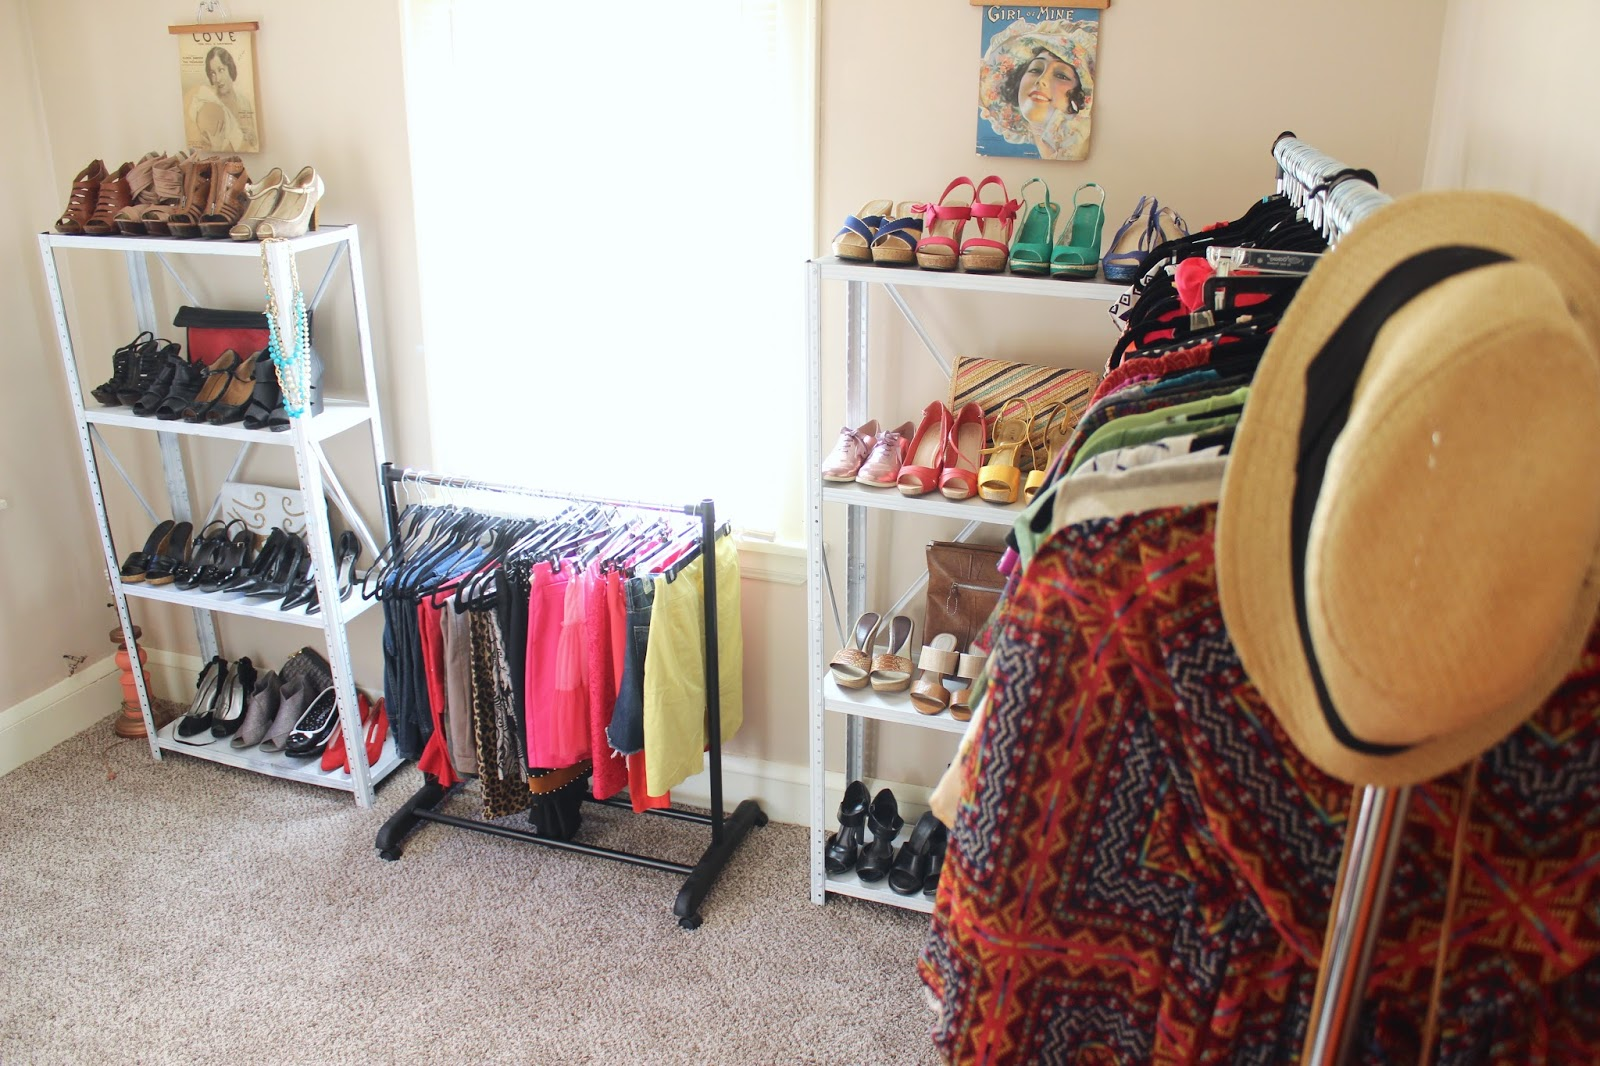 Dina 39 S Days Turning A Spare Room Into A Dressing Room Or Walk In Closet Part Ii